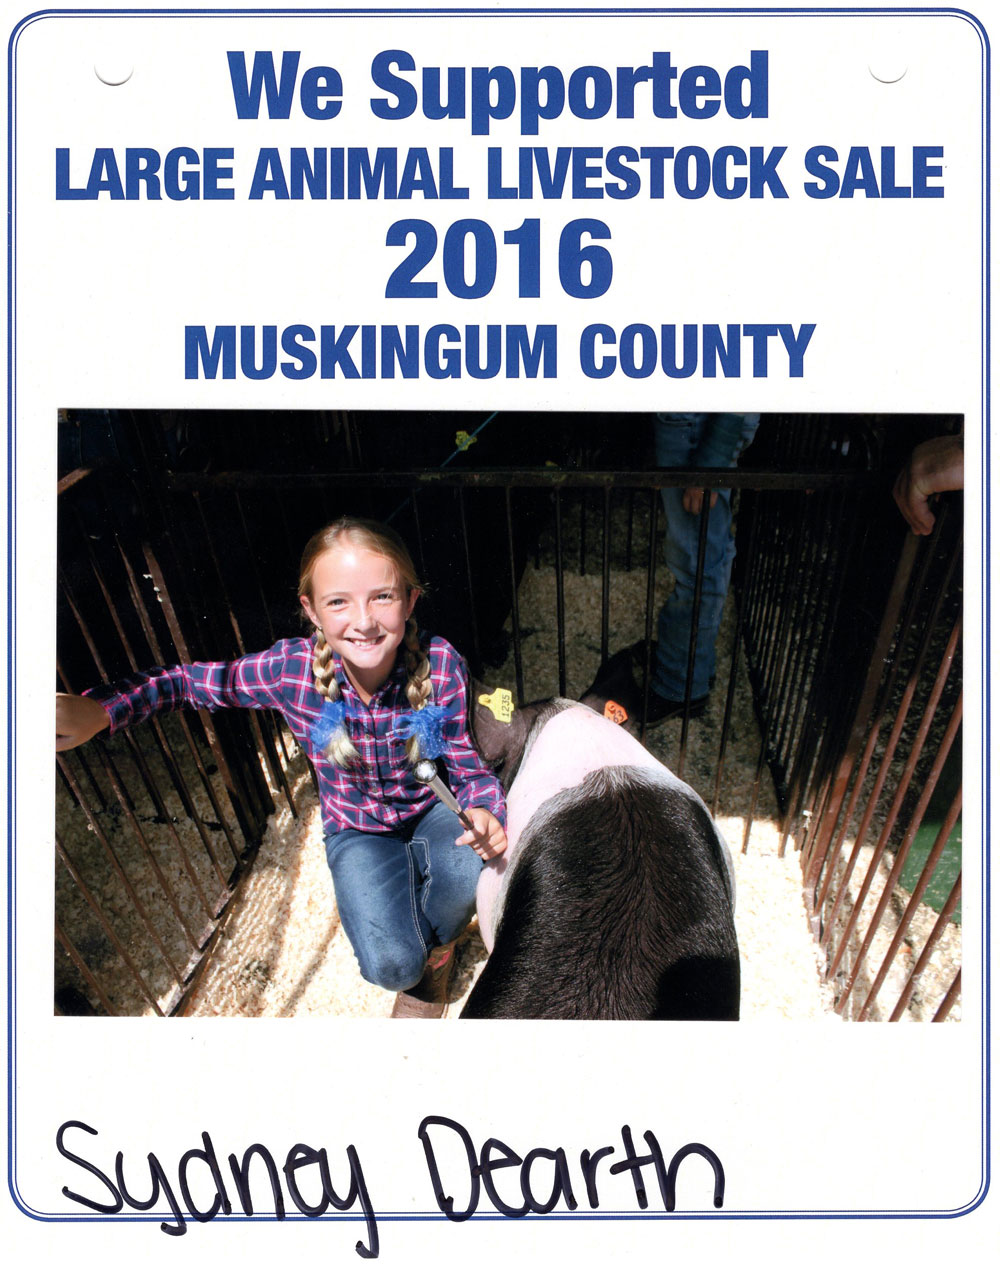 Zemba Bros Community Support Muskingum County Fair Live Stock Auction 1